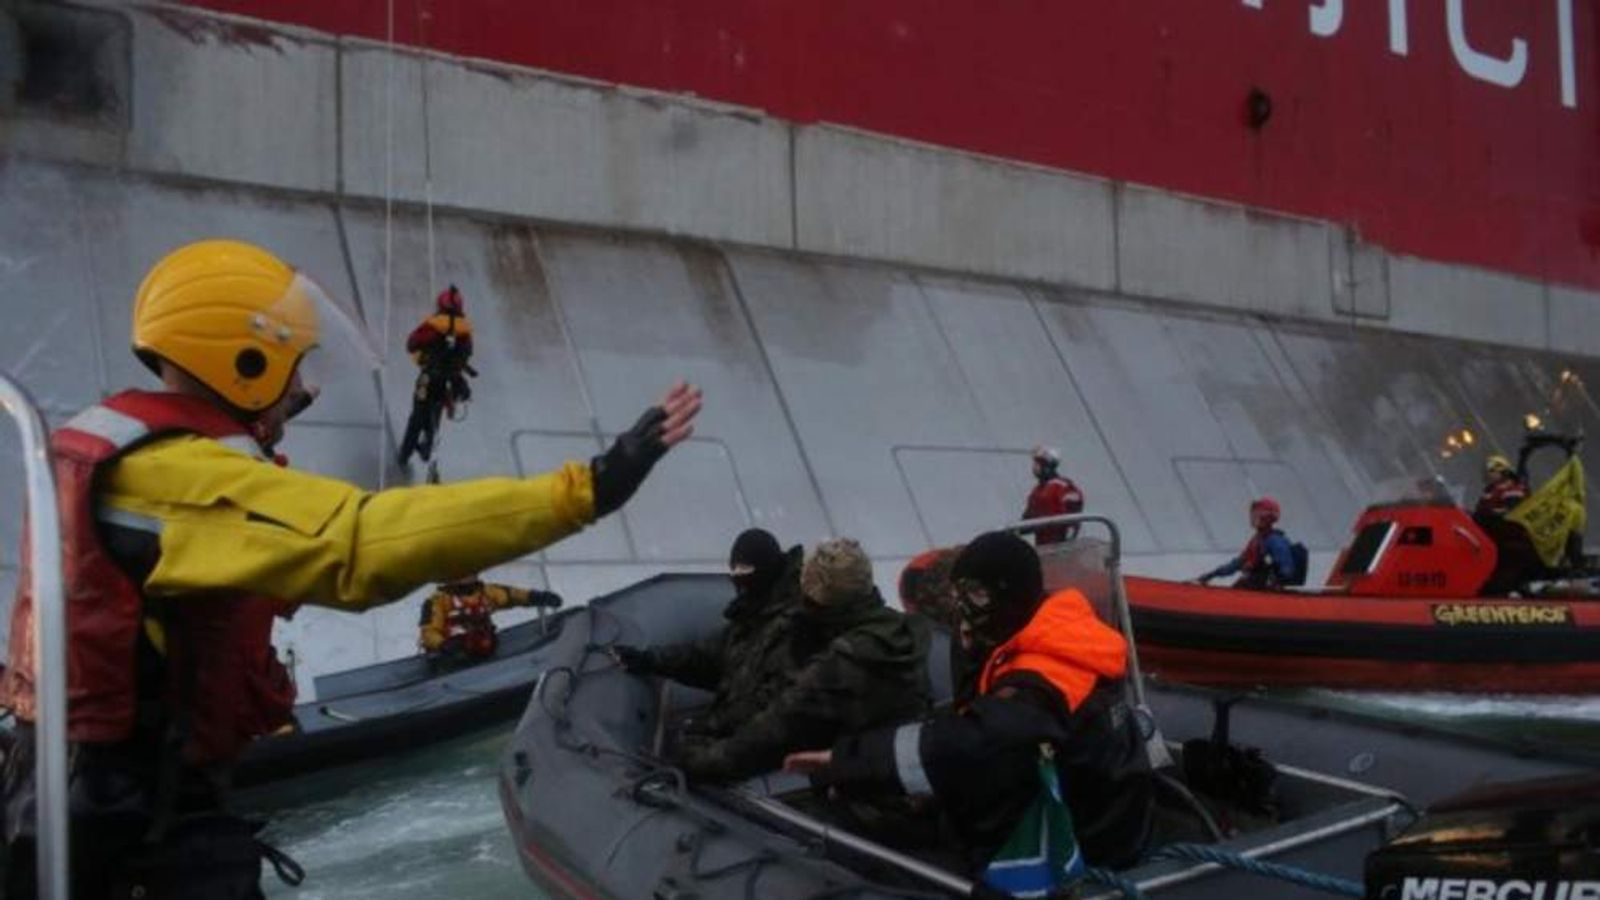 Armed Russian coastguard arrest two Greenpeace activists